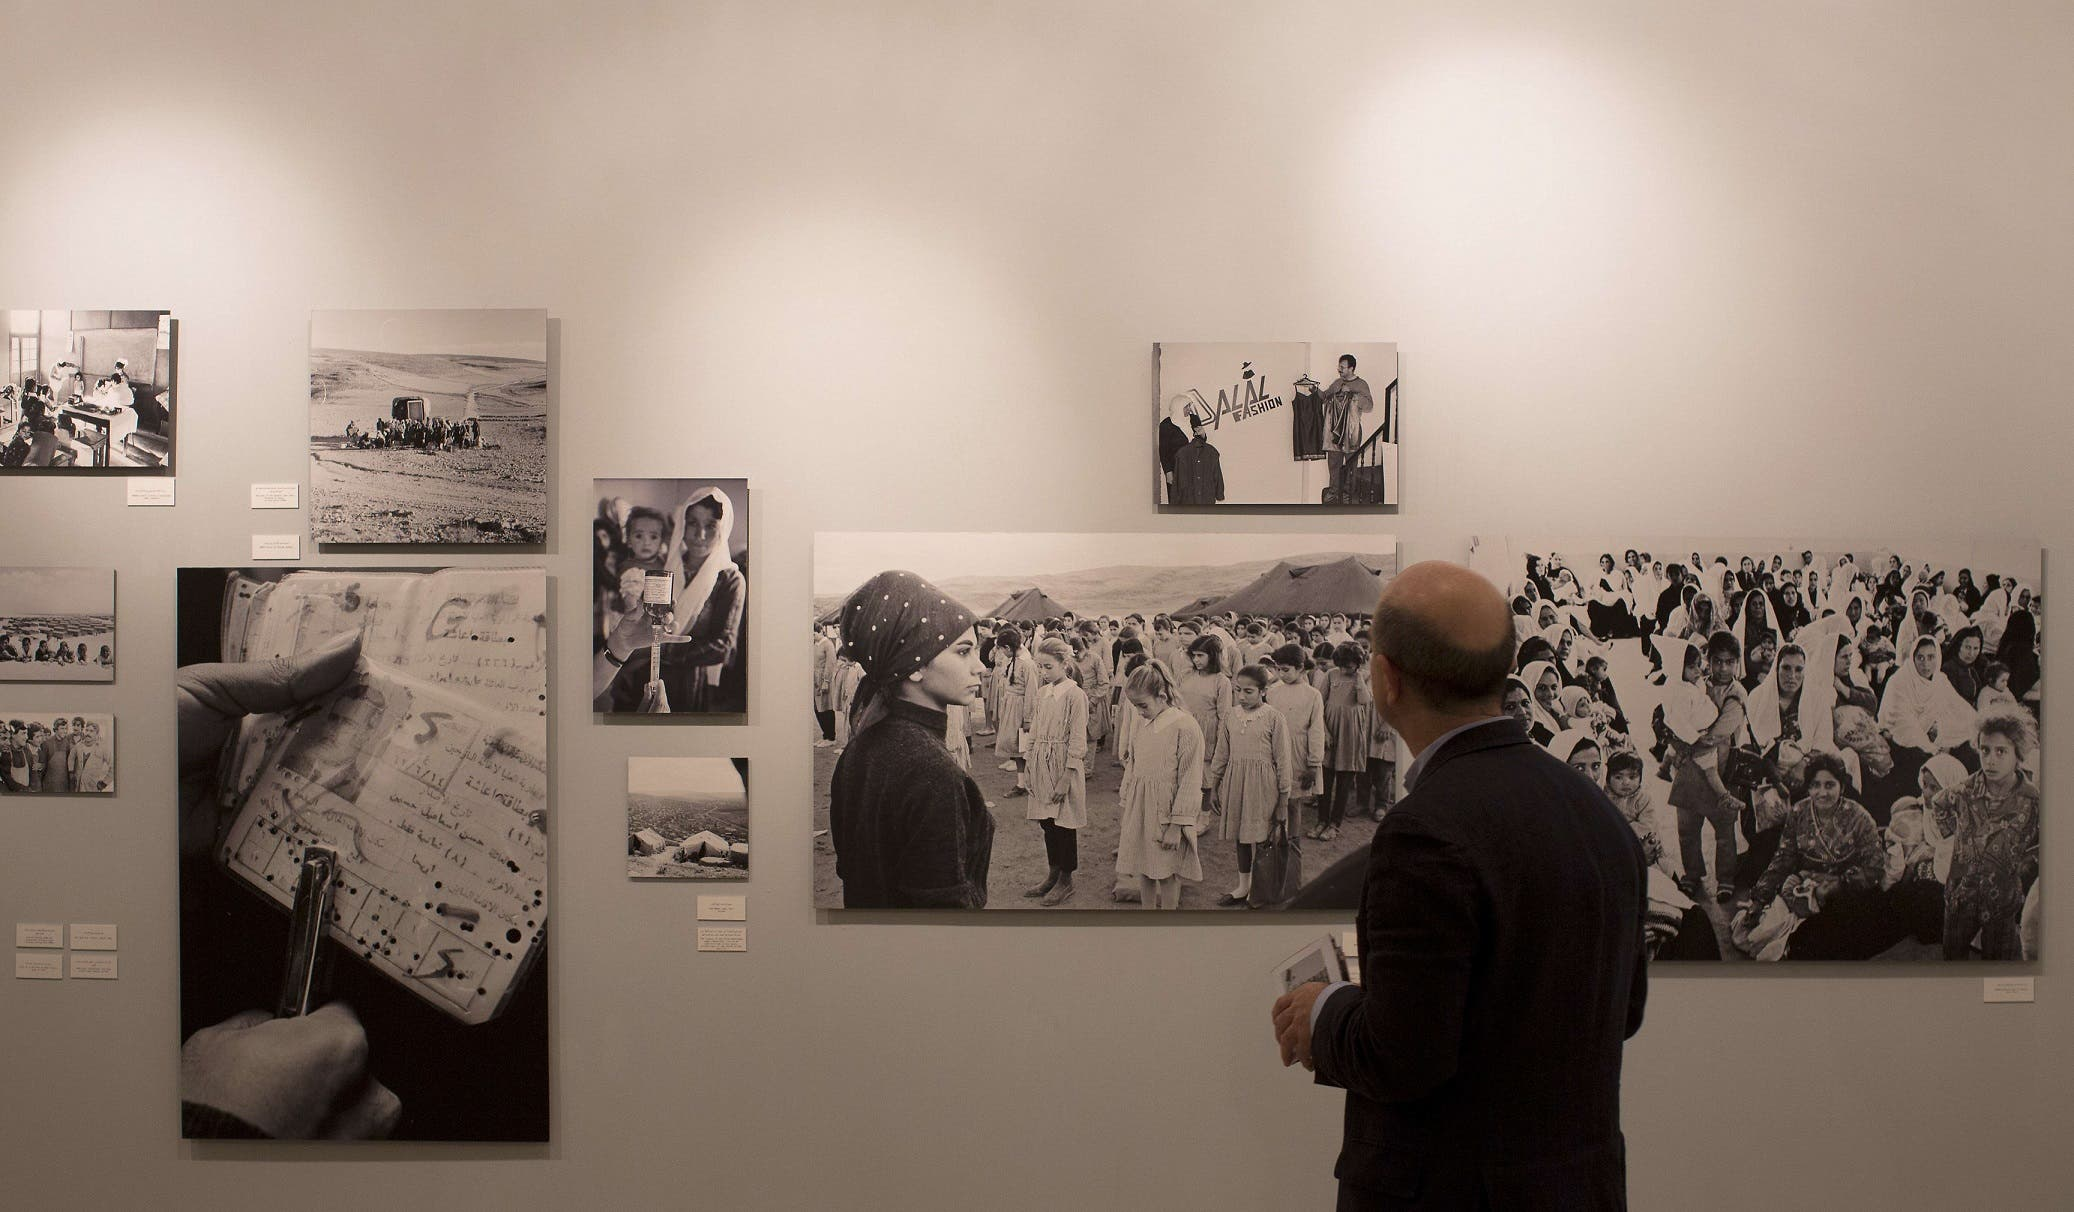 Palestine refugees in pictures